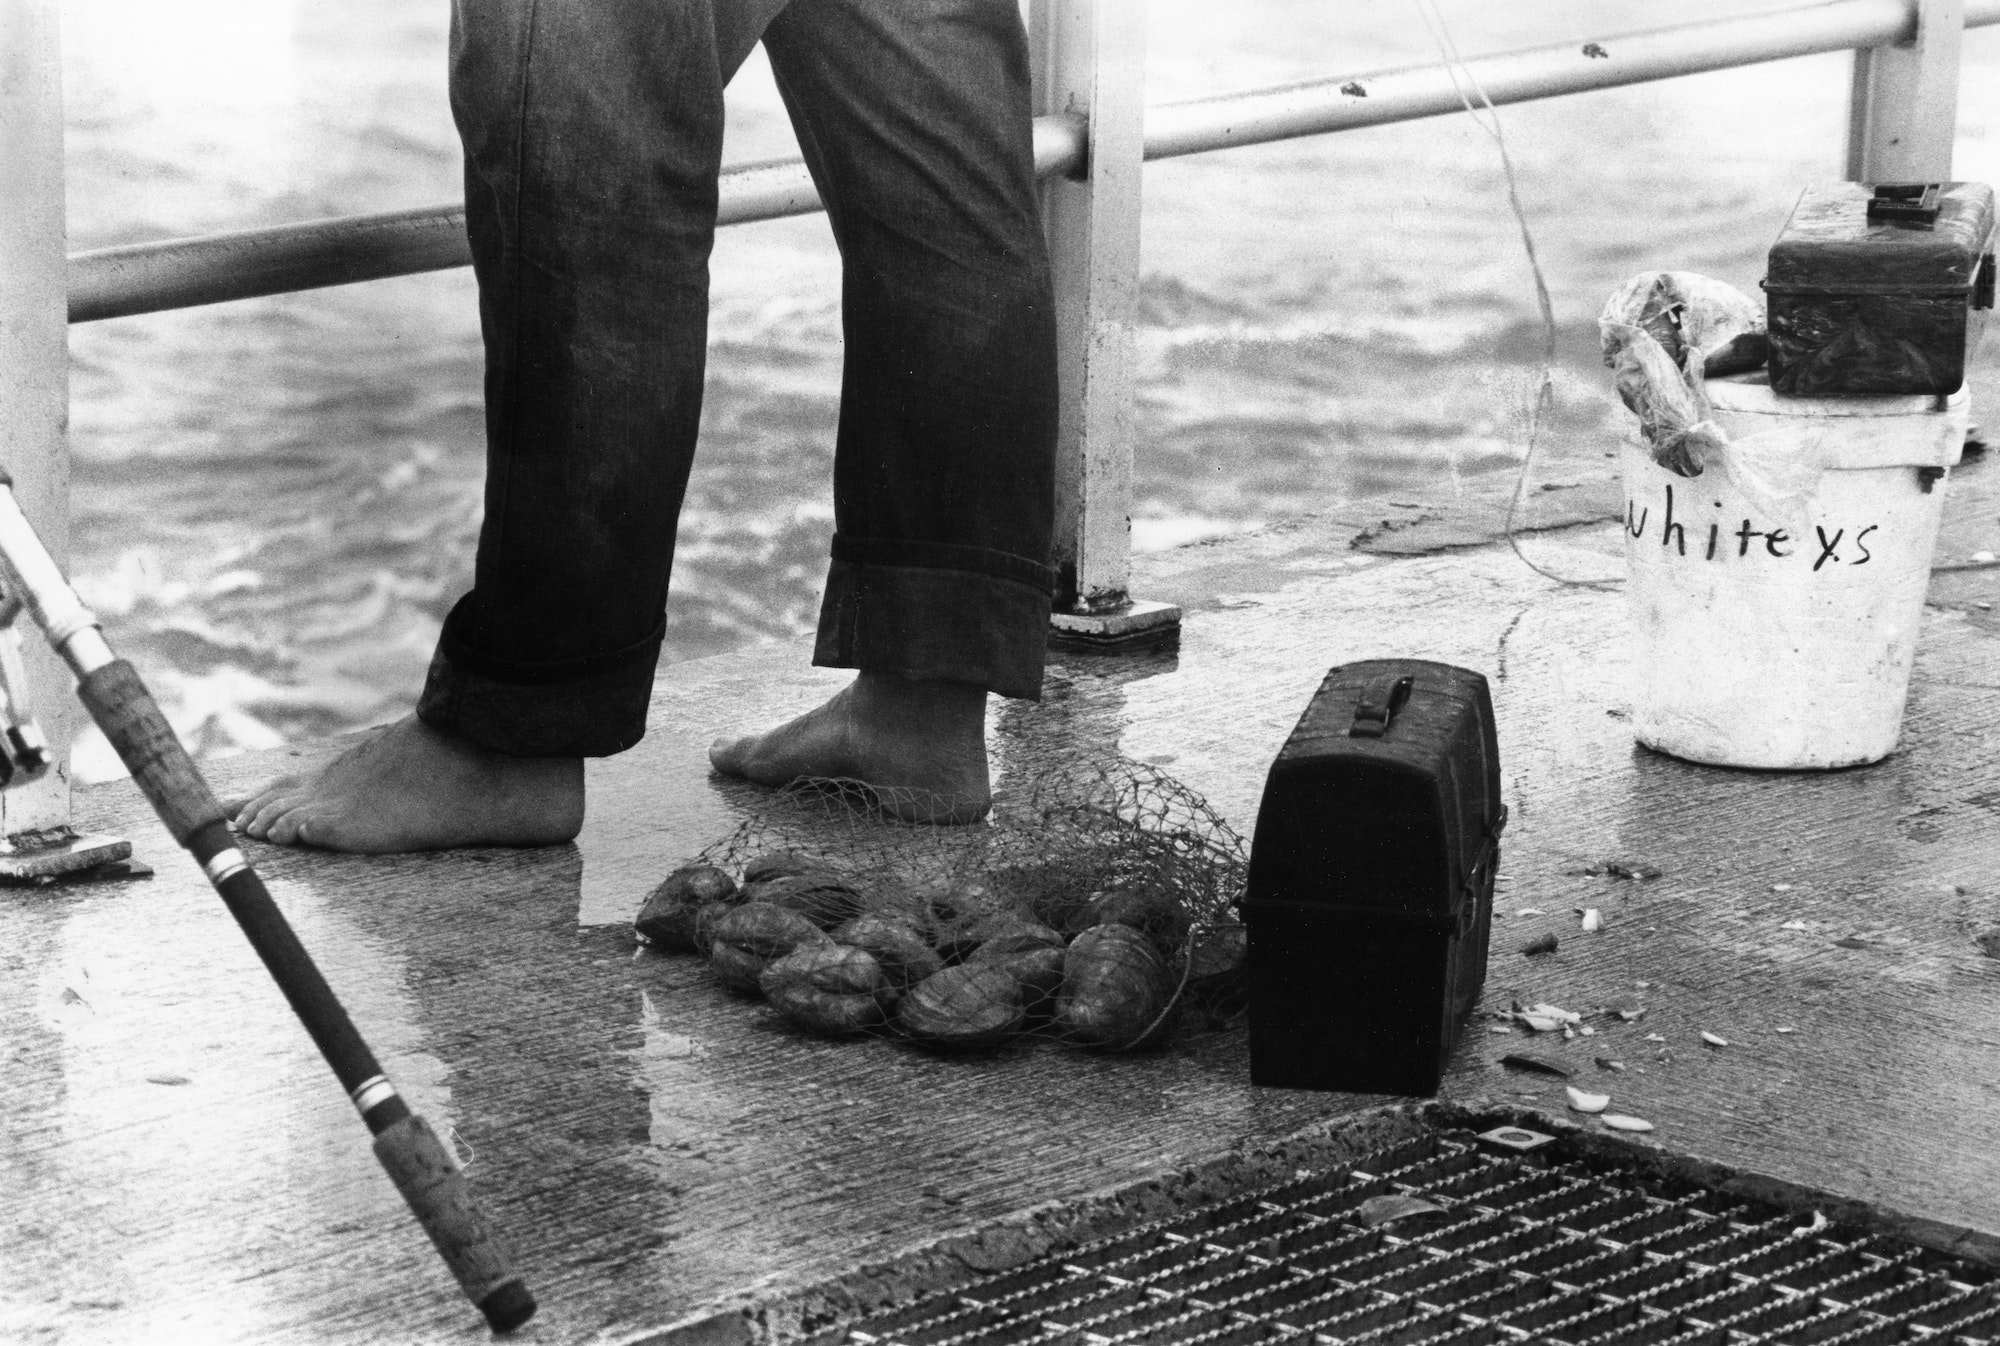 fisherman feet on north jetty with Whitey's bait buck, bag of clams, lunch pail and rod